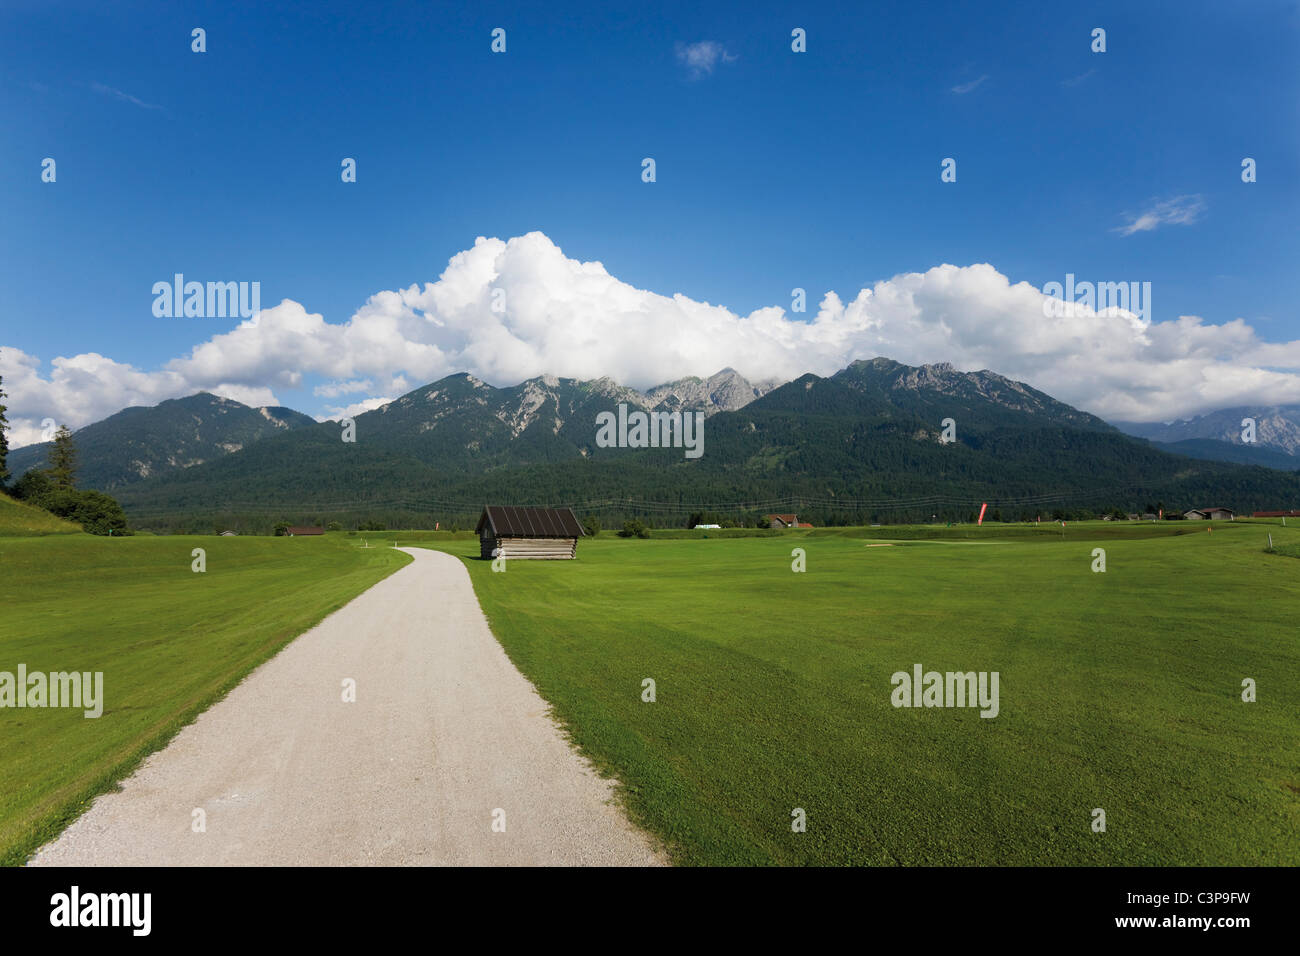 Germany, Bavaria, View of empty track with karwendel mountains in background - Stock Image